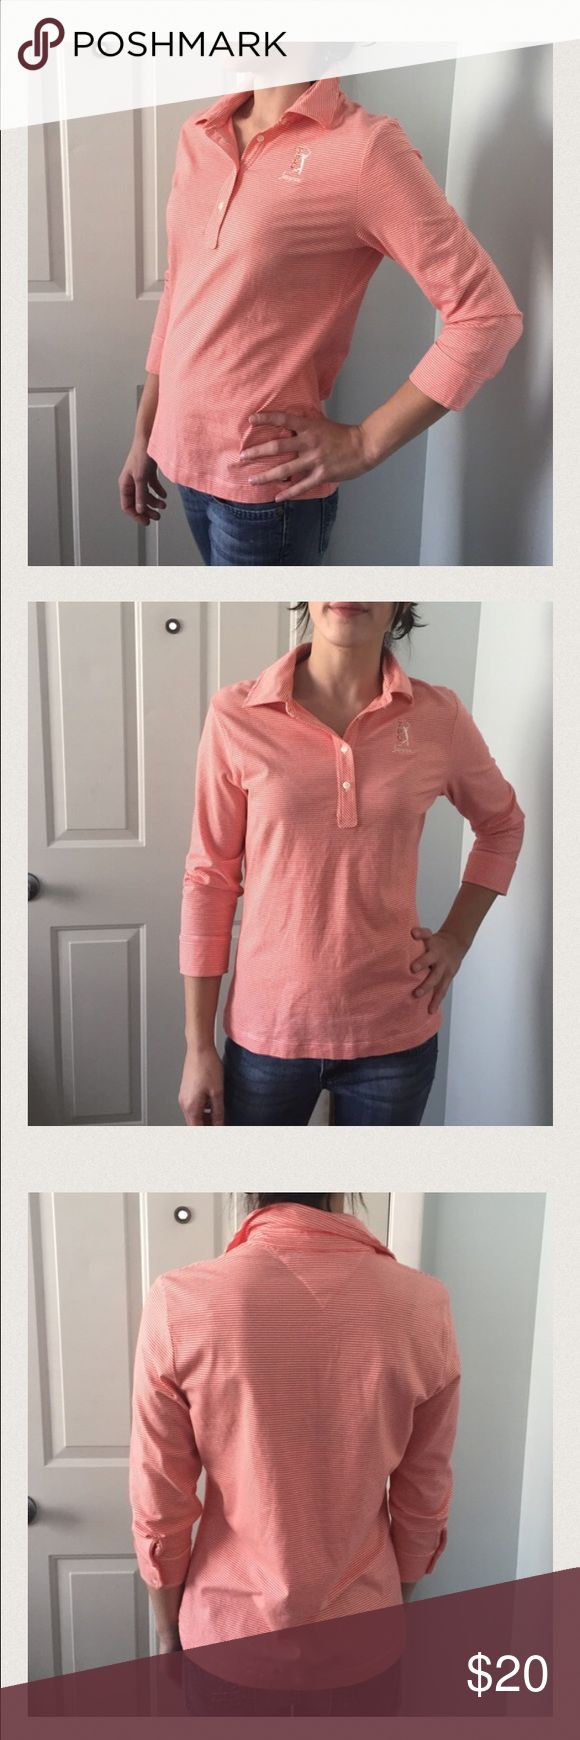 🔴size Small Tommy Hilfiger Sawgrass shirt This shirt is so soft it's unbelievable!  And it doesn't seem to wrinkle.  Tommy Hilfiger Golf shirt. Size S, Sawgrass.  Gently pre owned. 🌻prices are negotiable - please feel free to make me an offer!  I also give great discounts when you make offers on bundled purchases!! 🌟 Tommy Hilfiger Tops